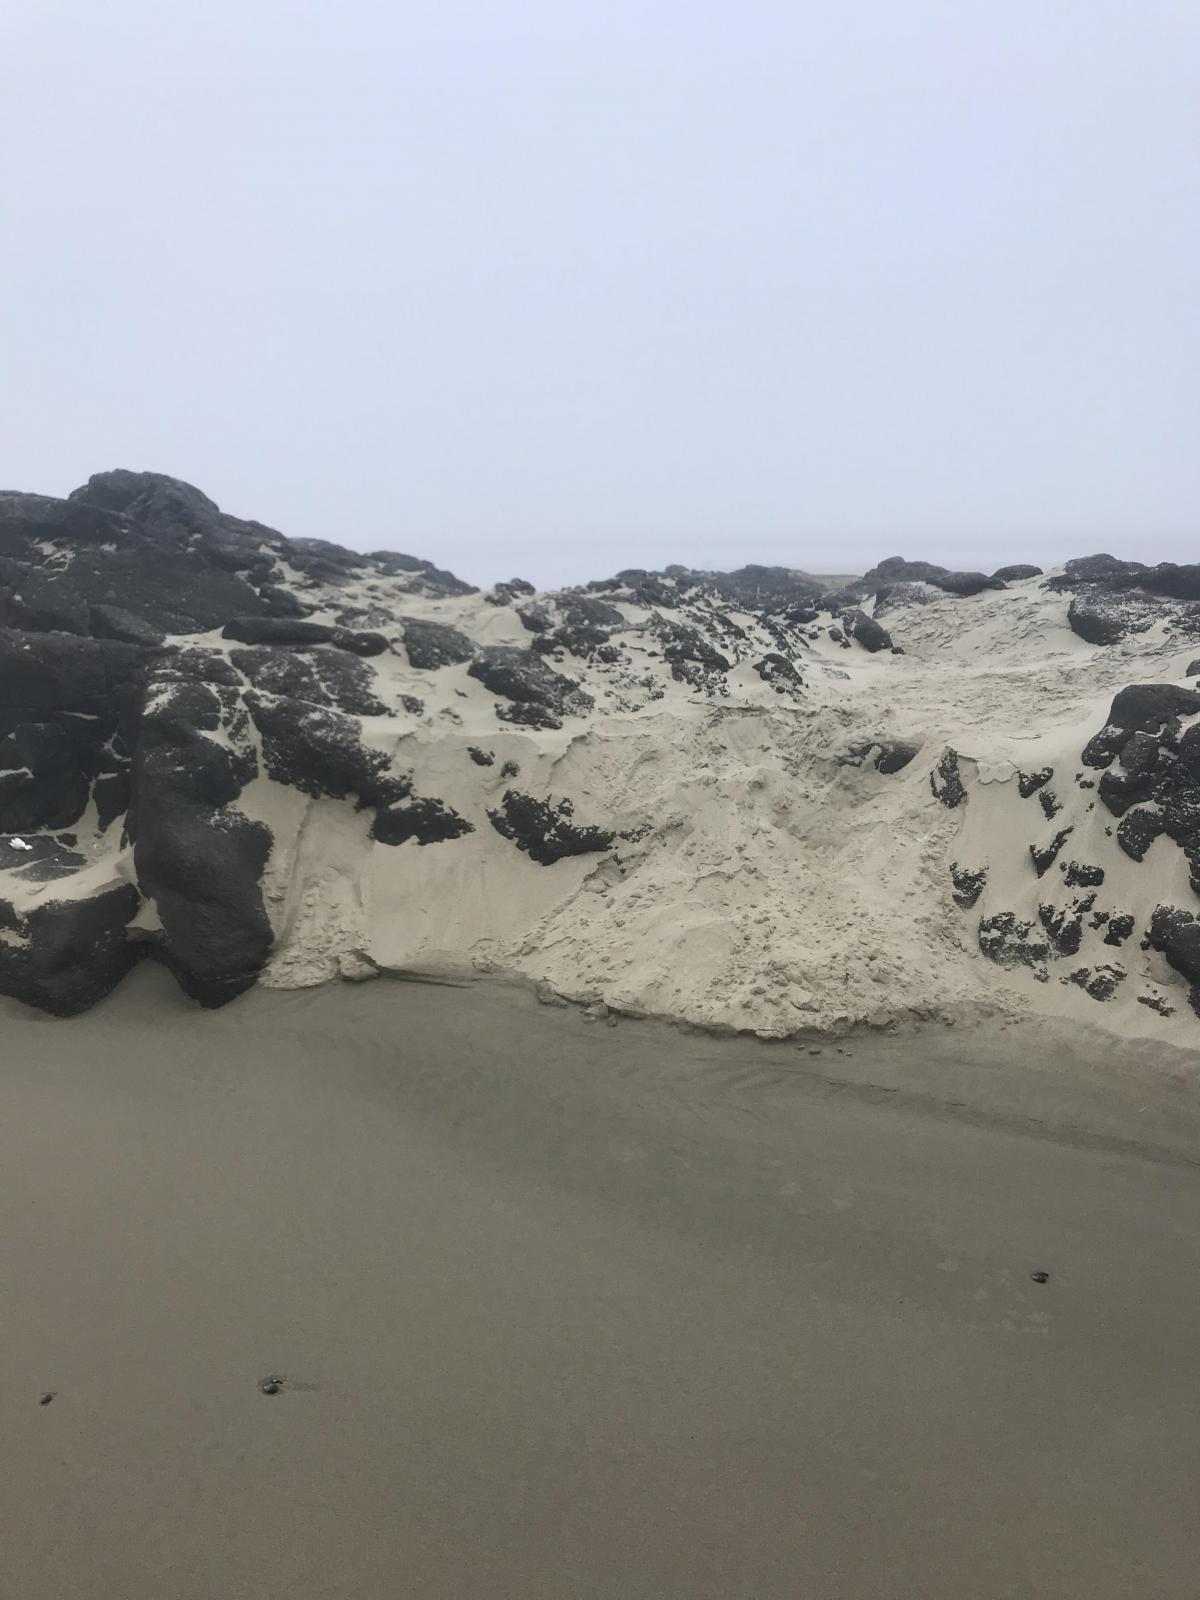 Rock formation almost completely obscured by sand